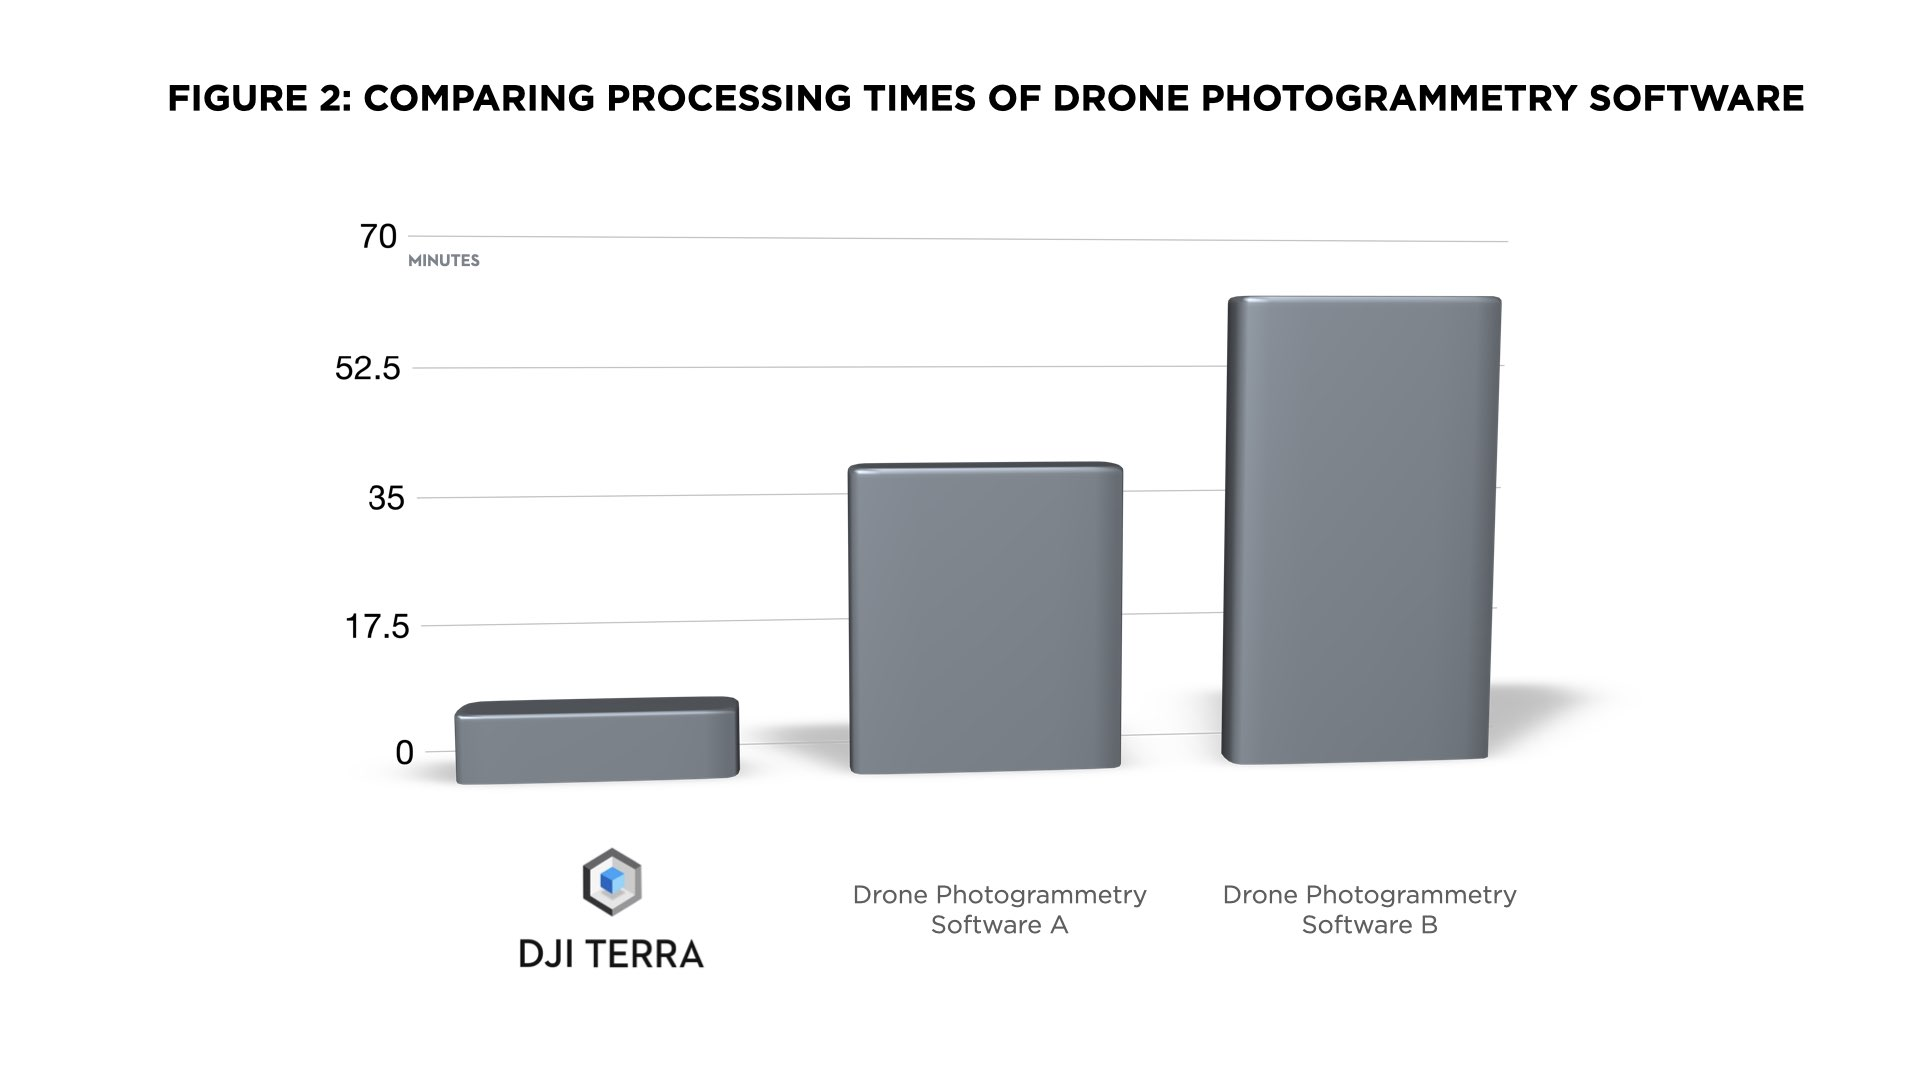 Comparing processing times of drone photogrammetry software